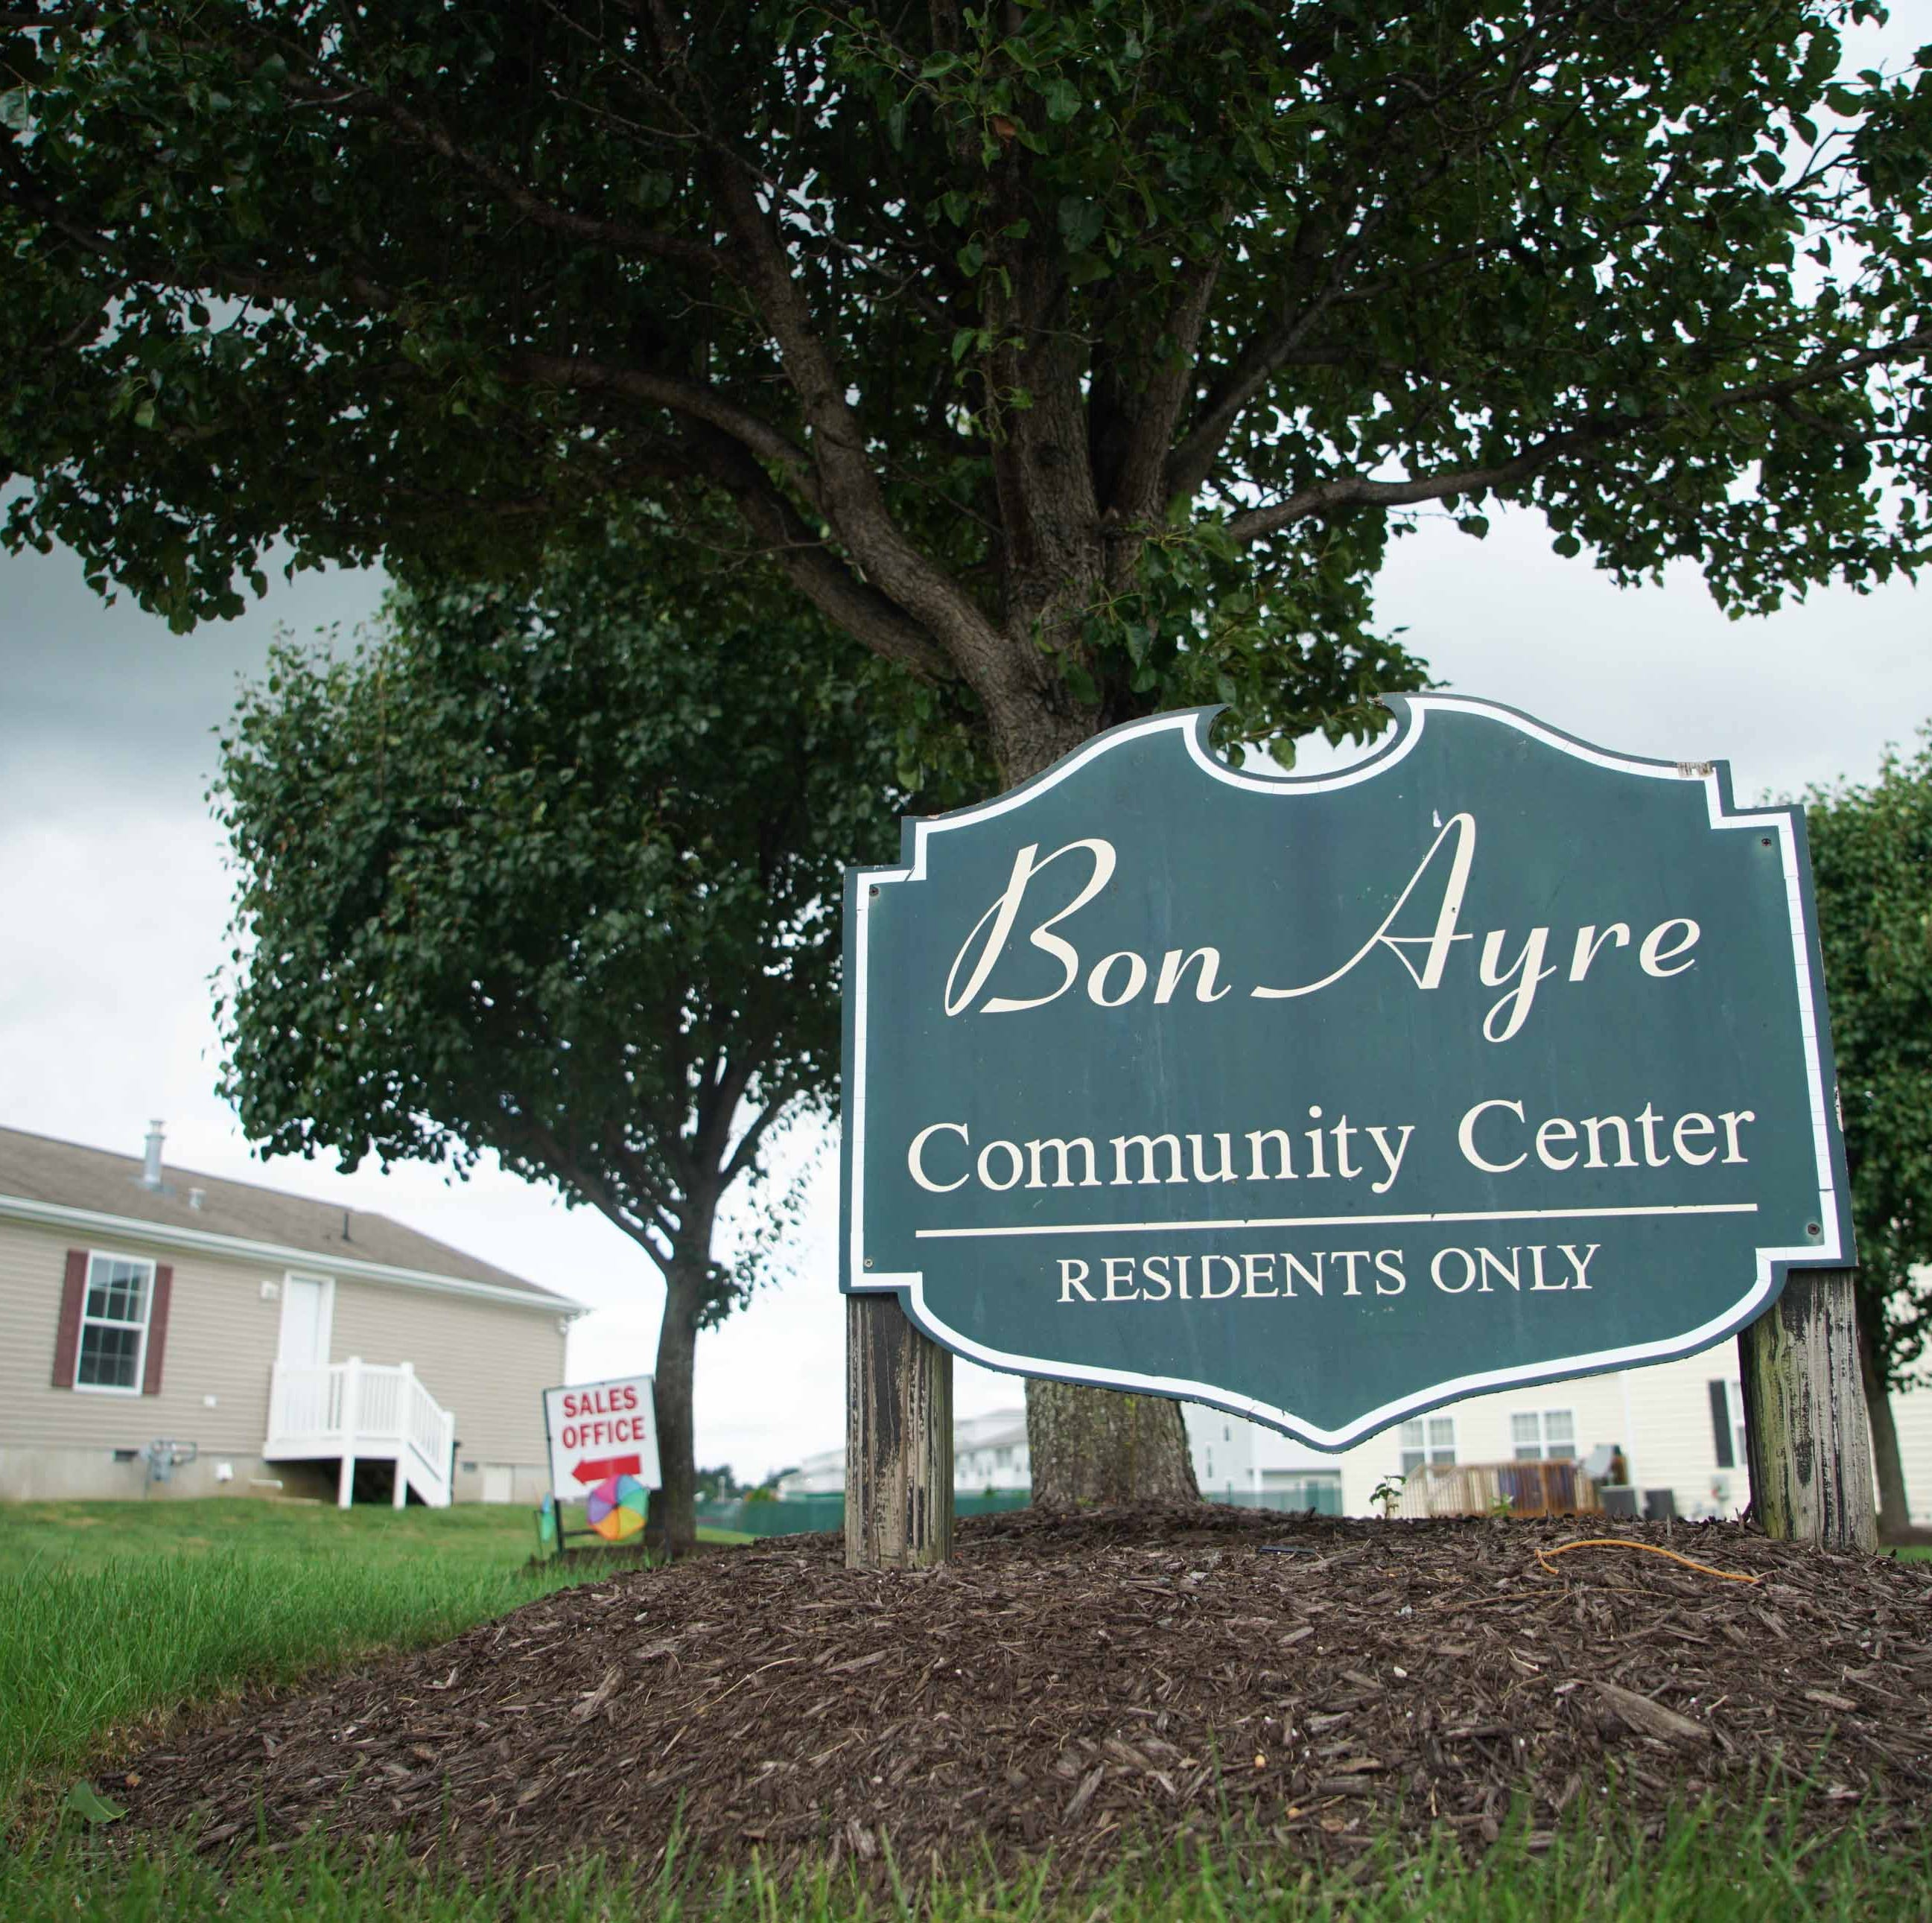 Residents of Smyrna's Bon Ayre community are getting amenities they don't want